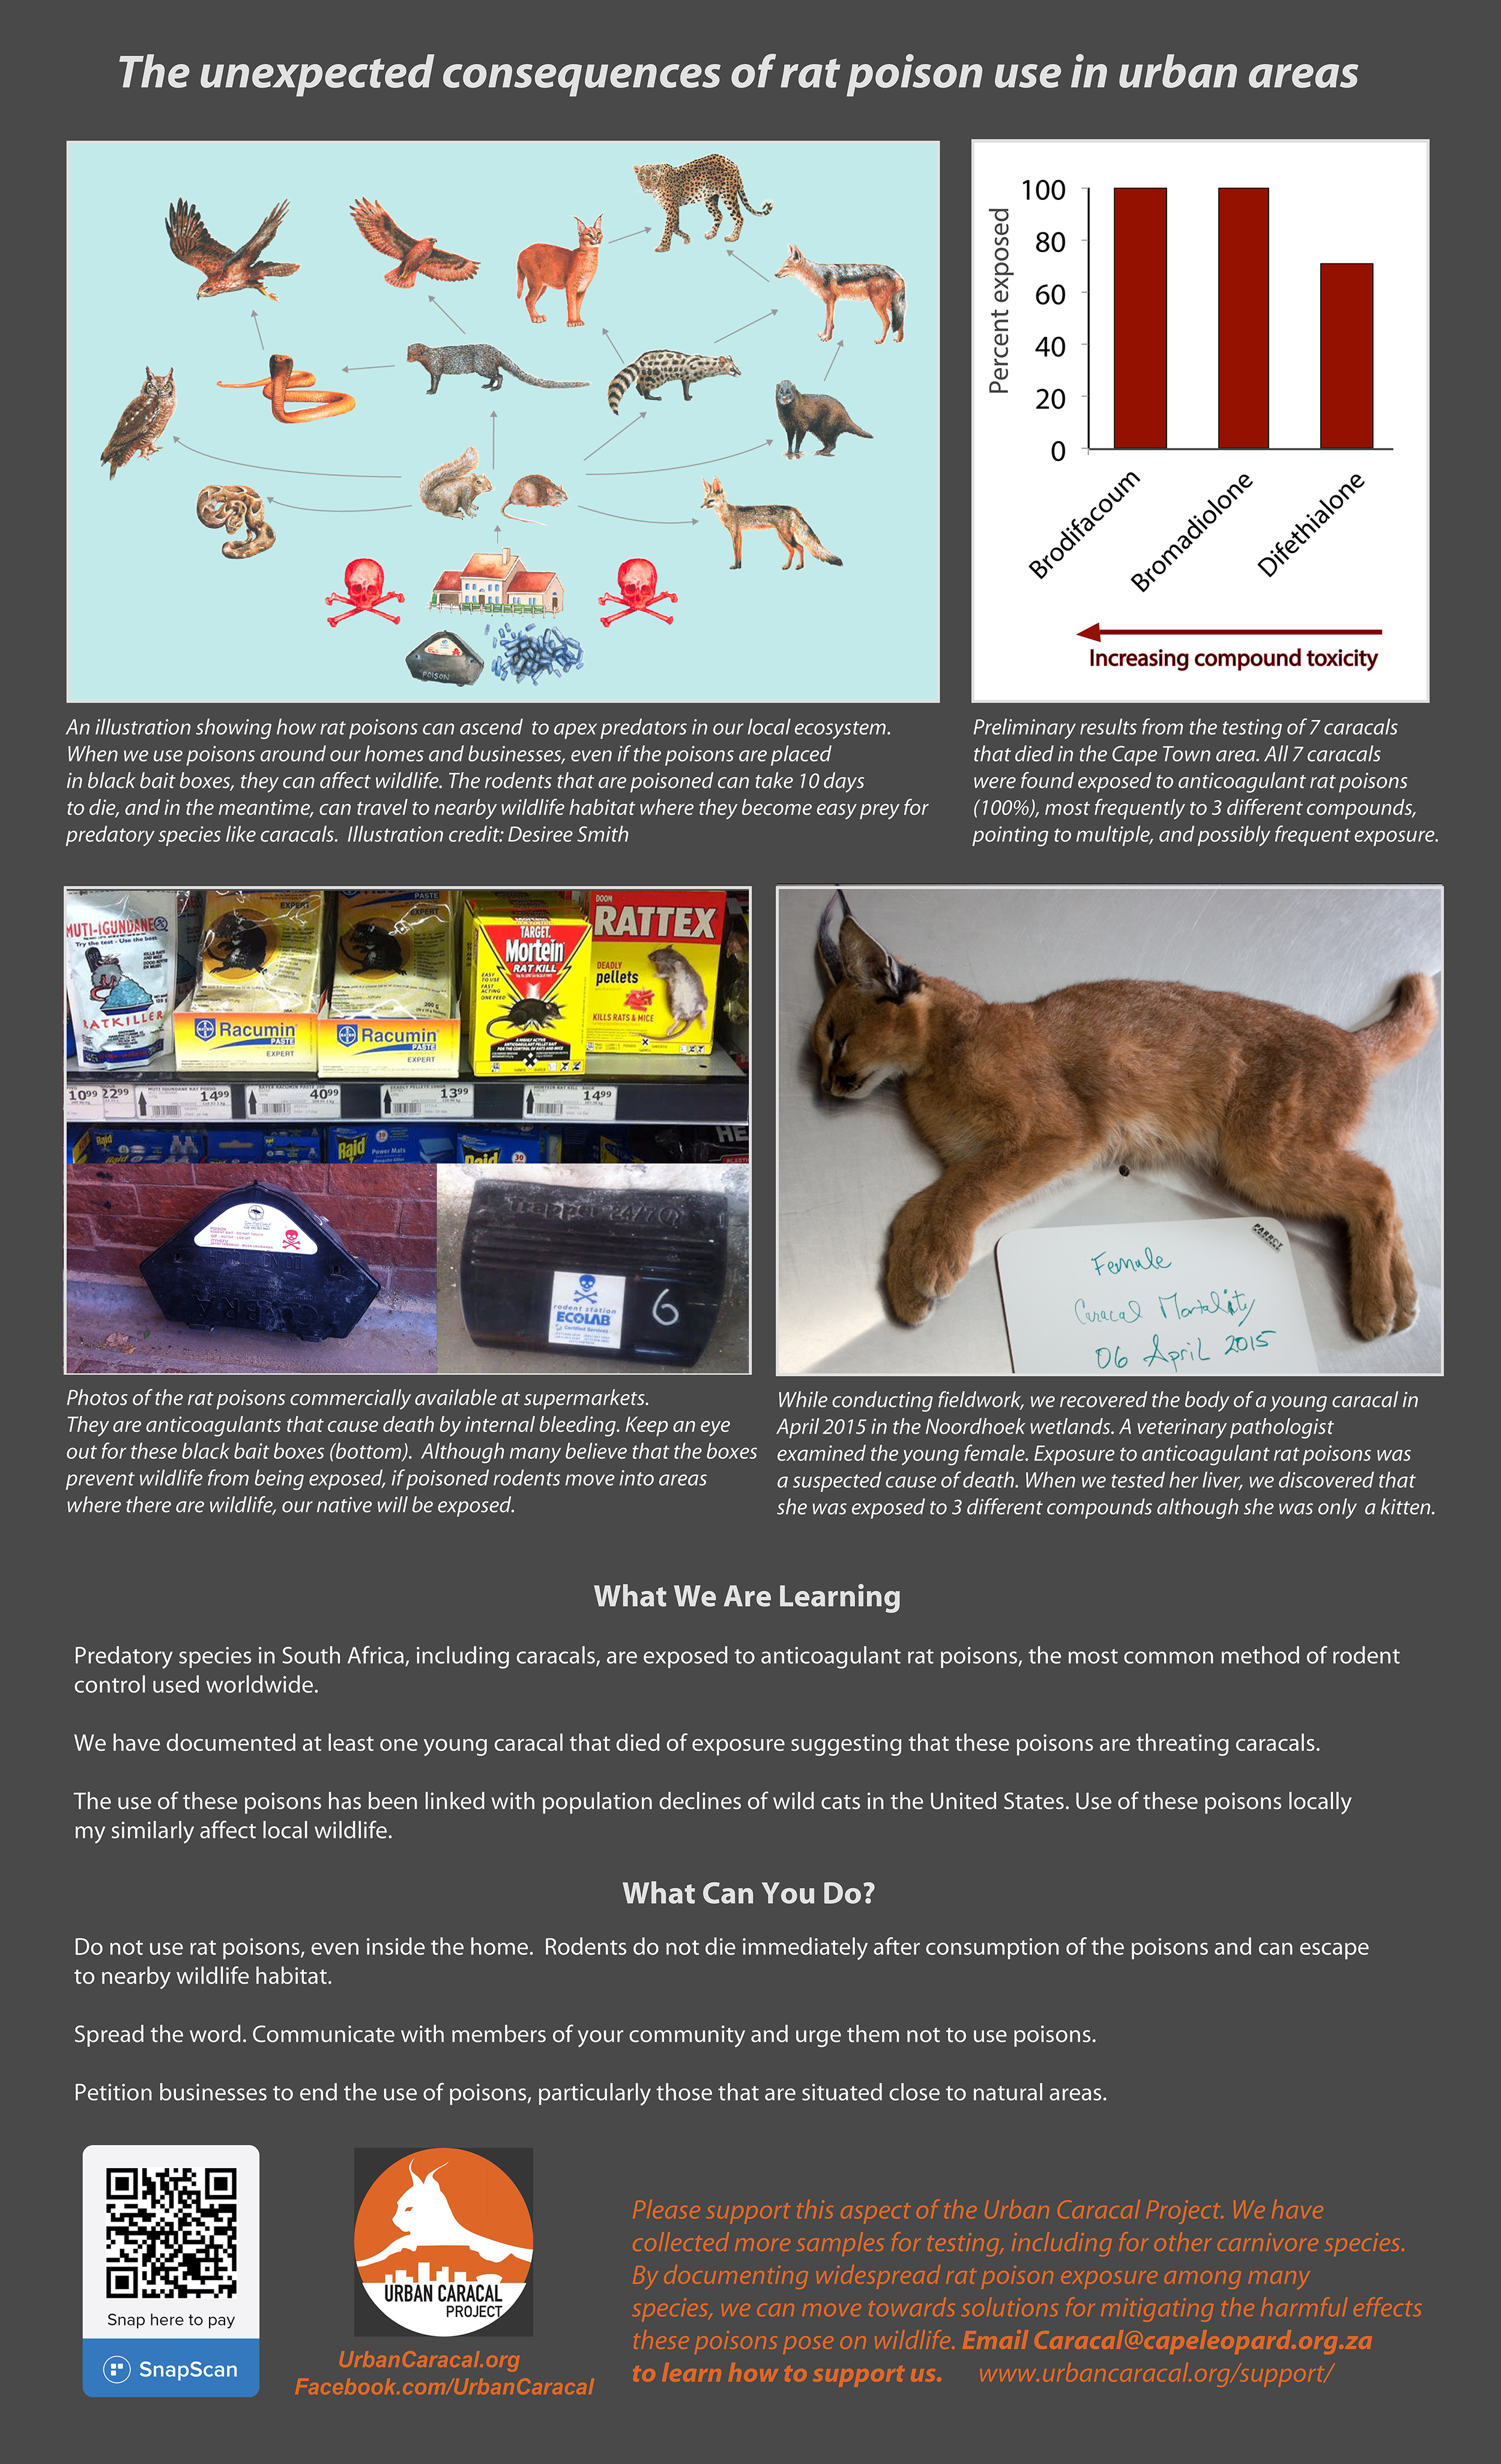 The unexpected consequences of rat poison use in urban areas - March 21, 2016